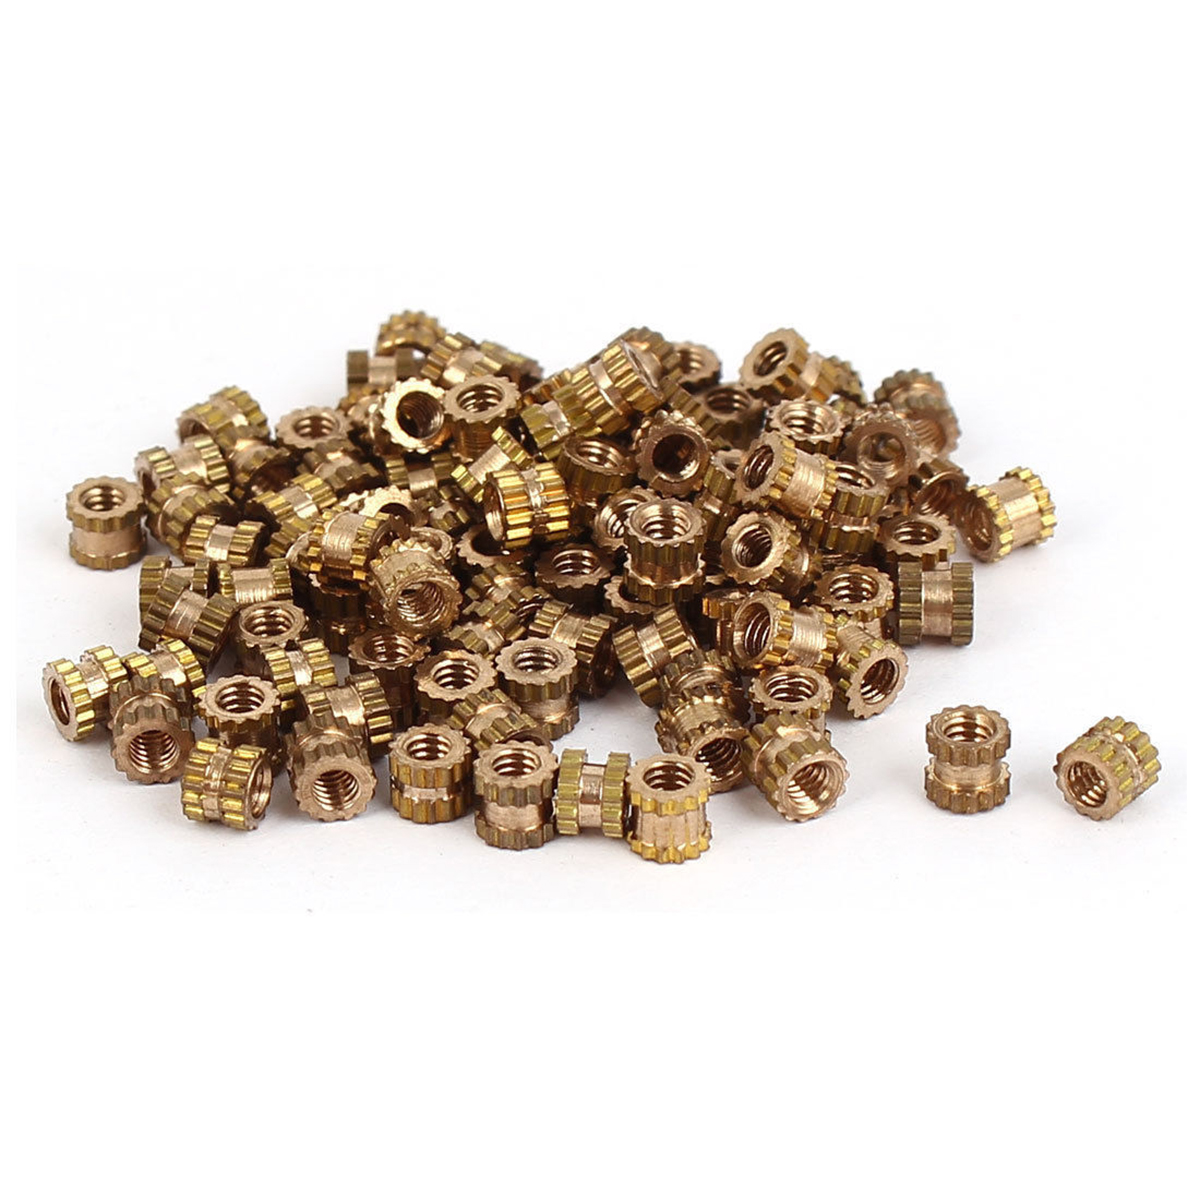 100pcs <font><b>M2x3mm</b></font> Brass Cylinder Knurled Threaded Insert Embedded Nuts Round Shape For Hardware Accessories image